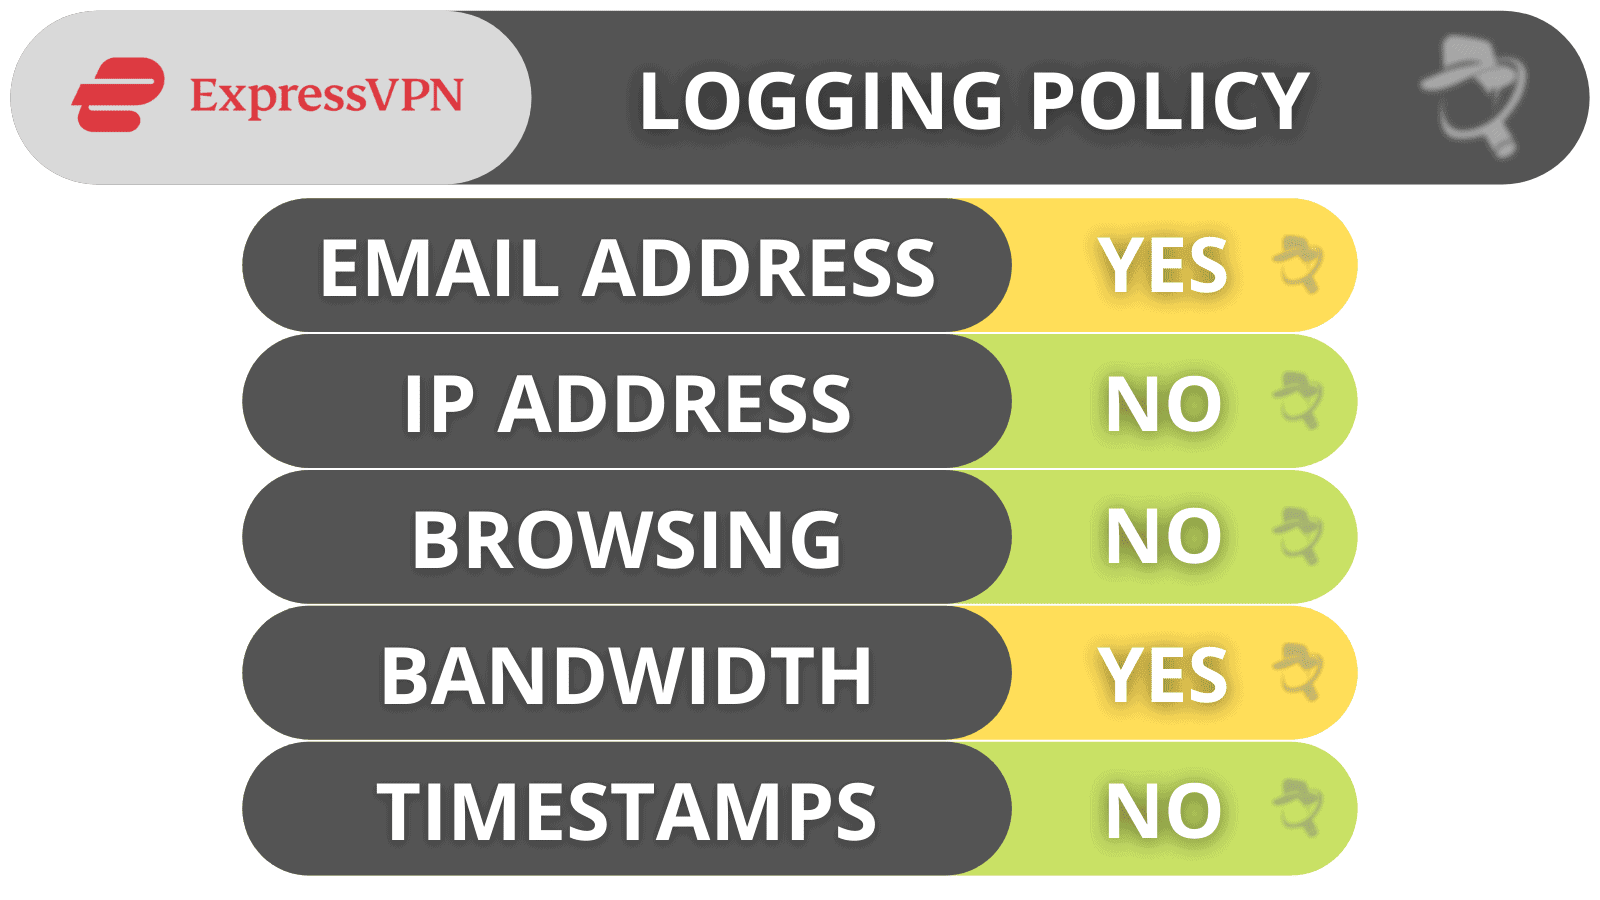 ExpressVPN Privacy & Security